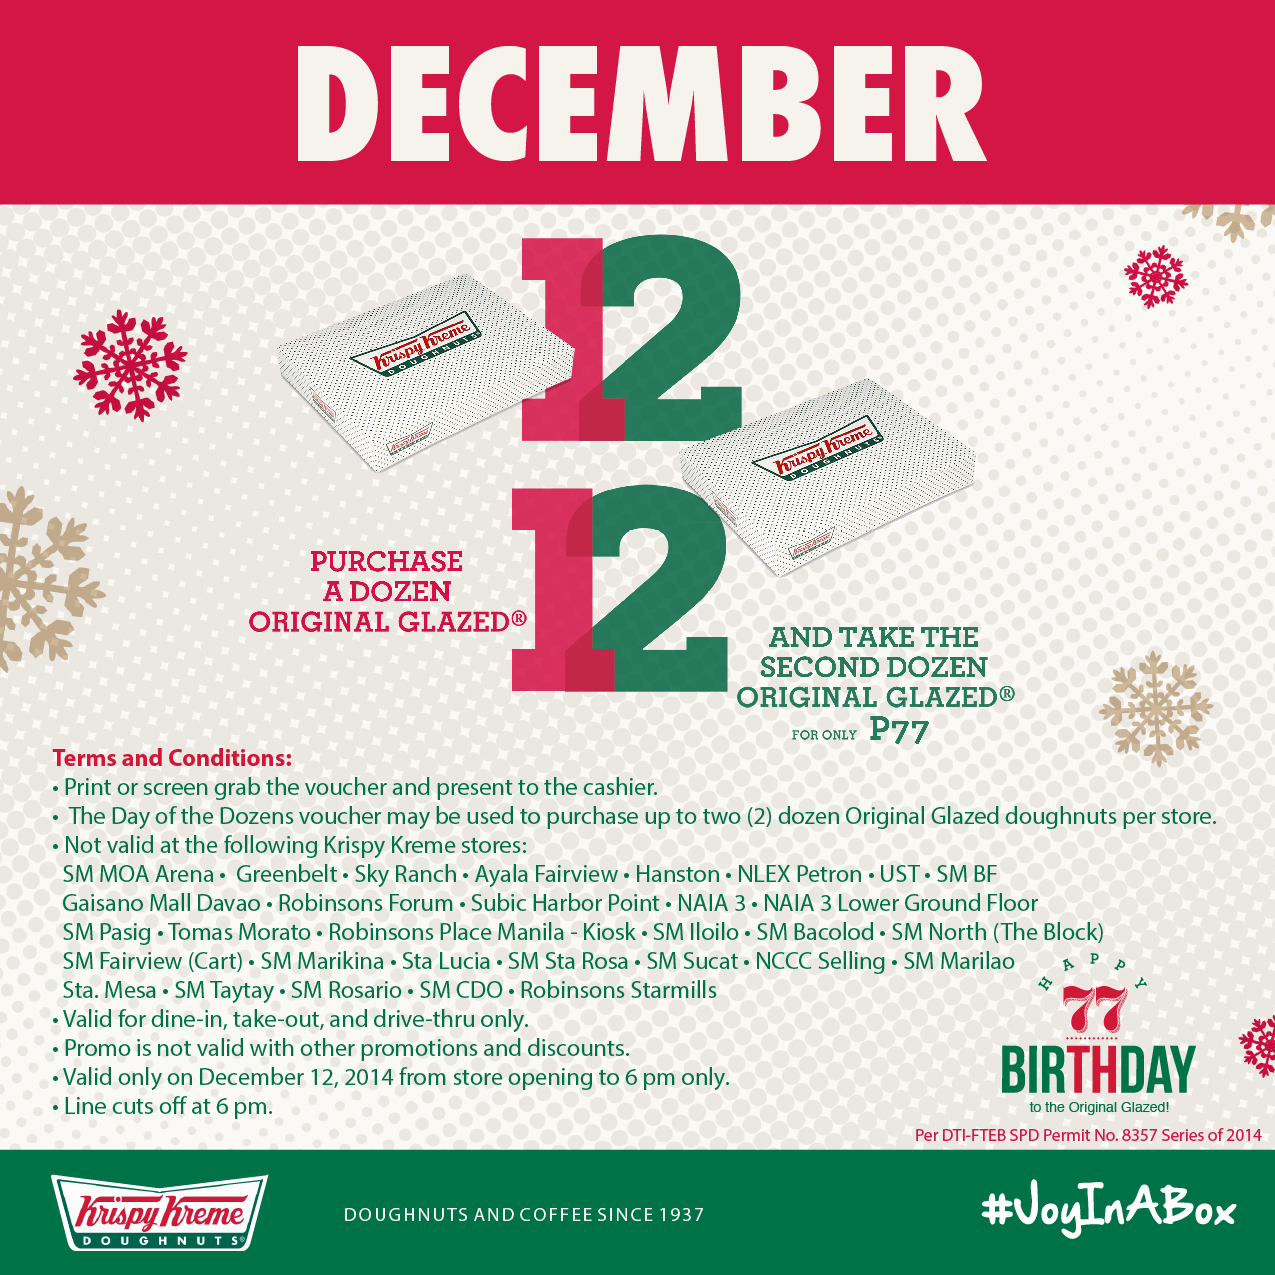 FTW! Blog, Krispy Kreme, Day of the Dozen 2014, #032eatdrink